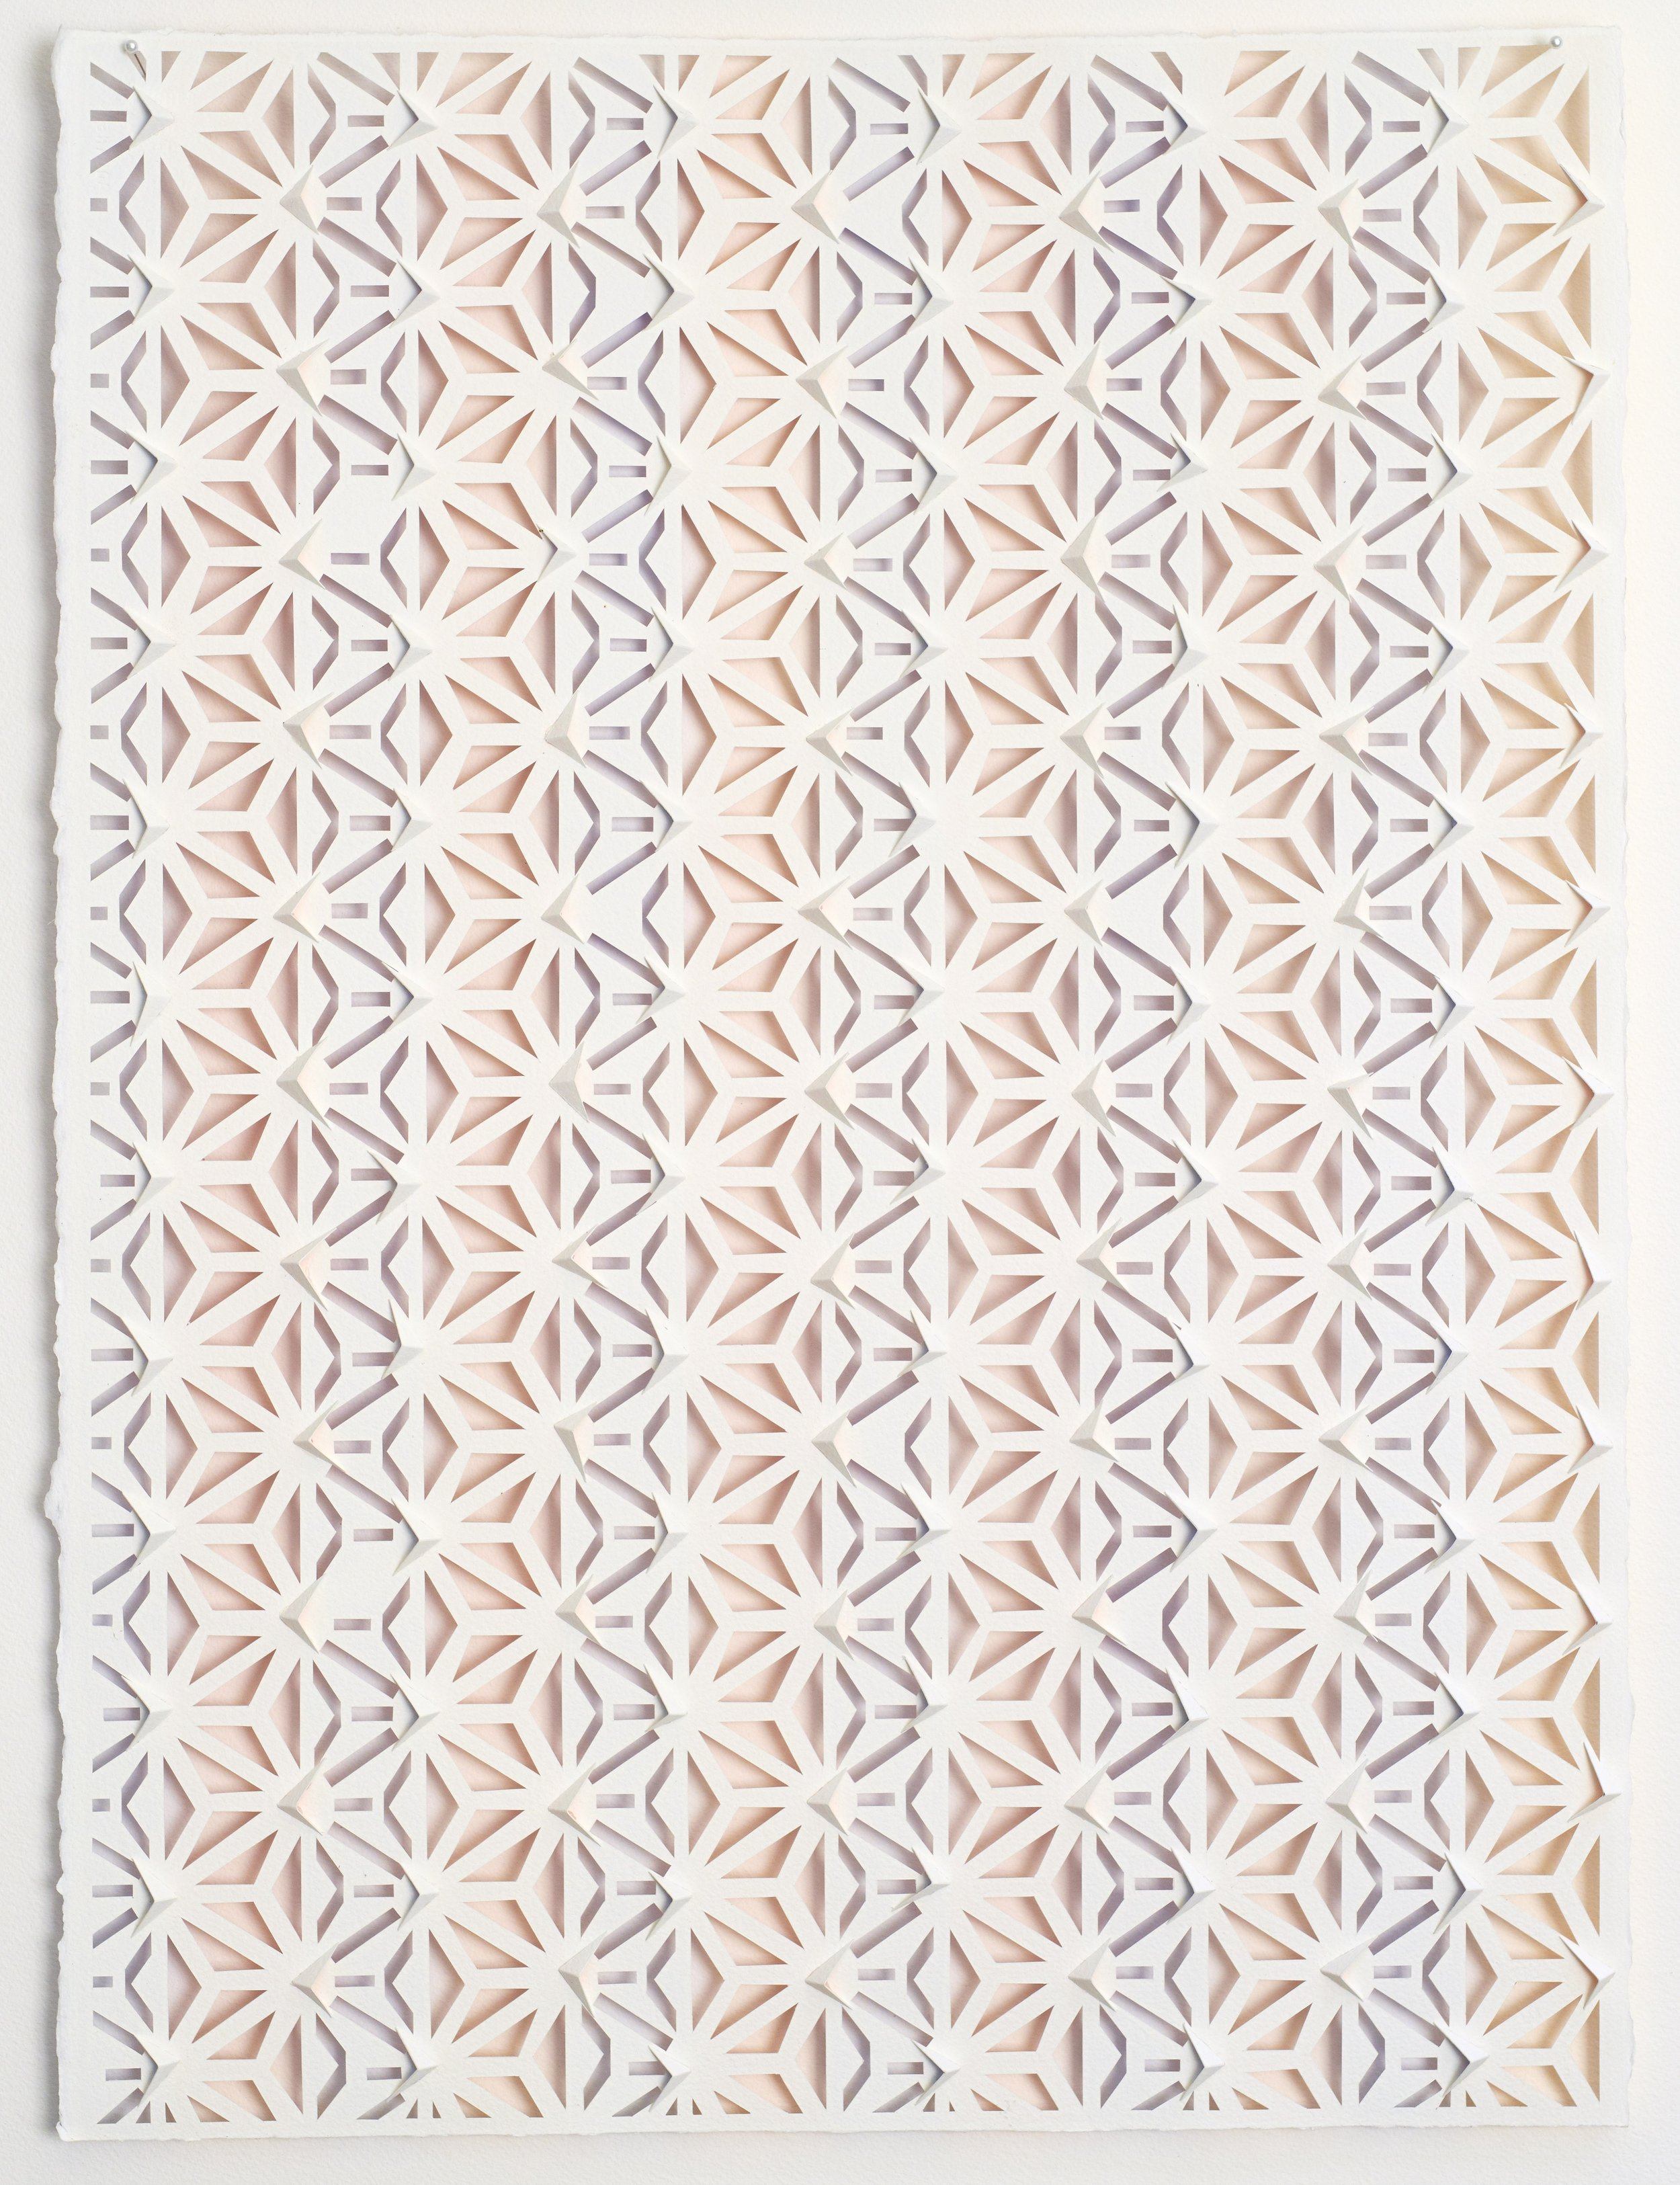 Lee Bethel, Komon 2018, watercolour on hand-cut paper, 76 x 54cm. Image courtesy the artist